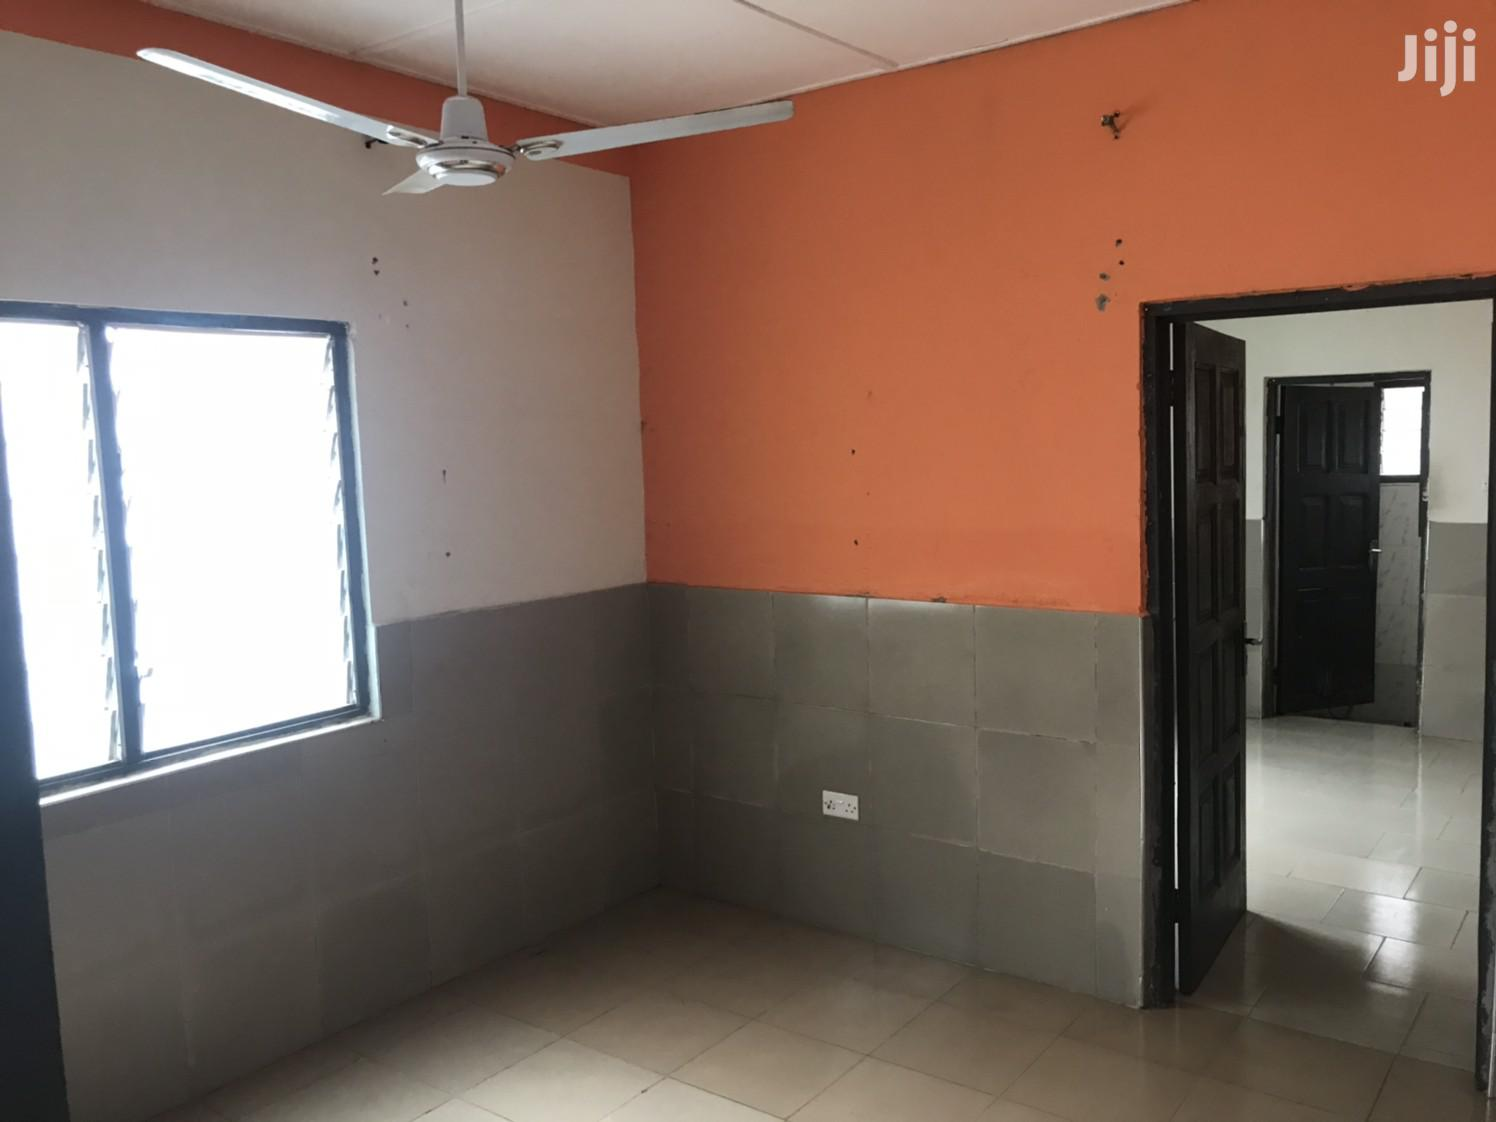 Chamber And Hall Self Contain In Teshie Bush Road For Rent | Houses & Apartments For Rent for sale in Teshie new Town, Greater Accra, Ghana